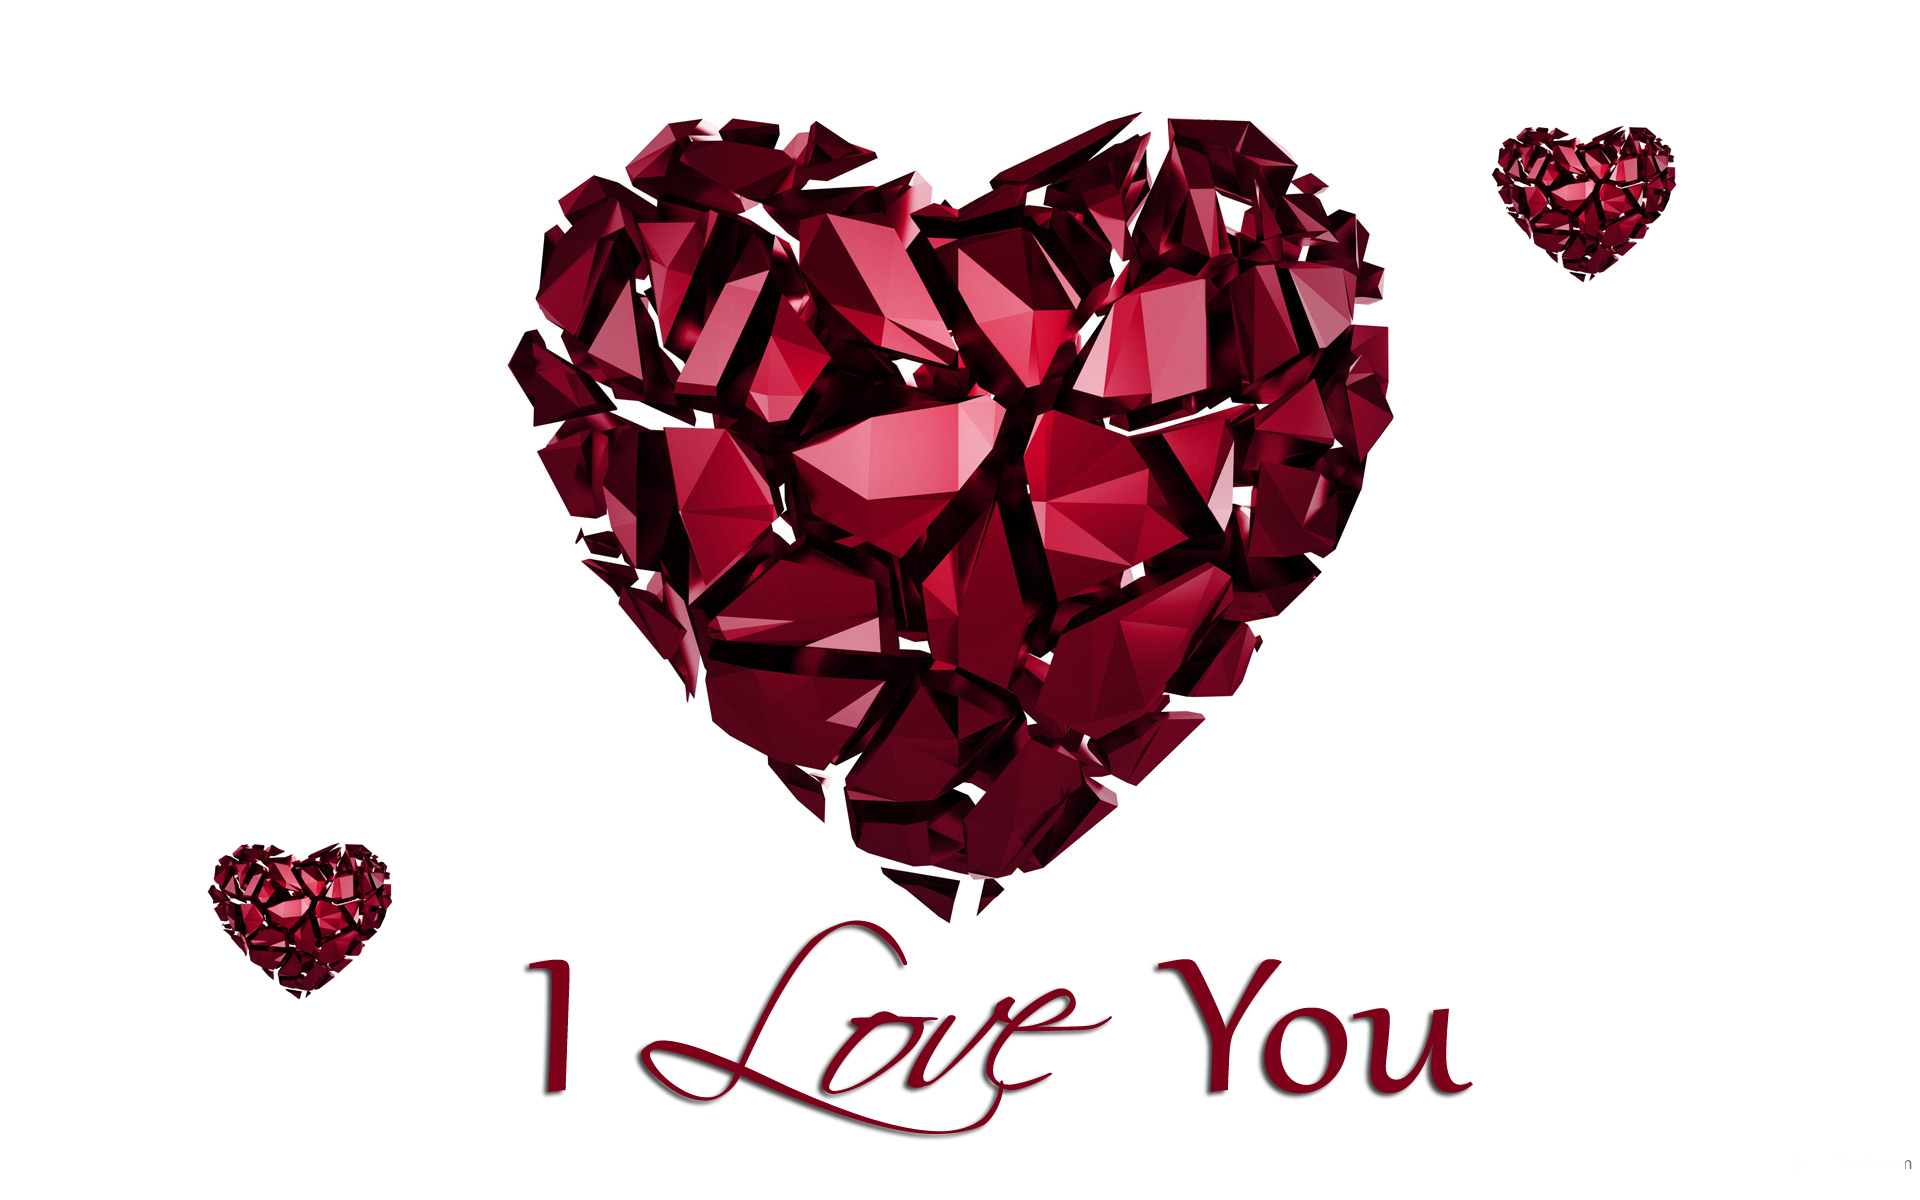 Love Wallpaper 3d Live : I Love You Wallpapers, Pictures, Images